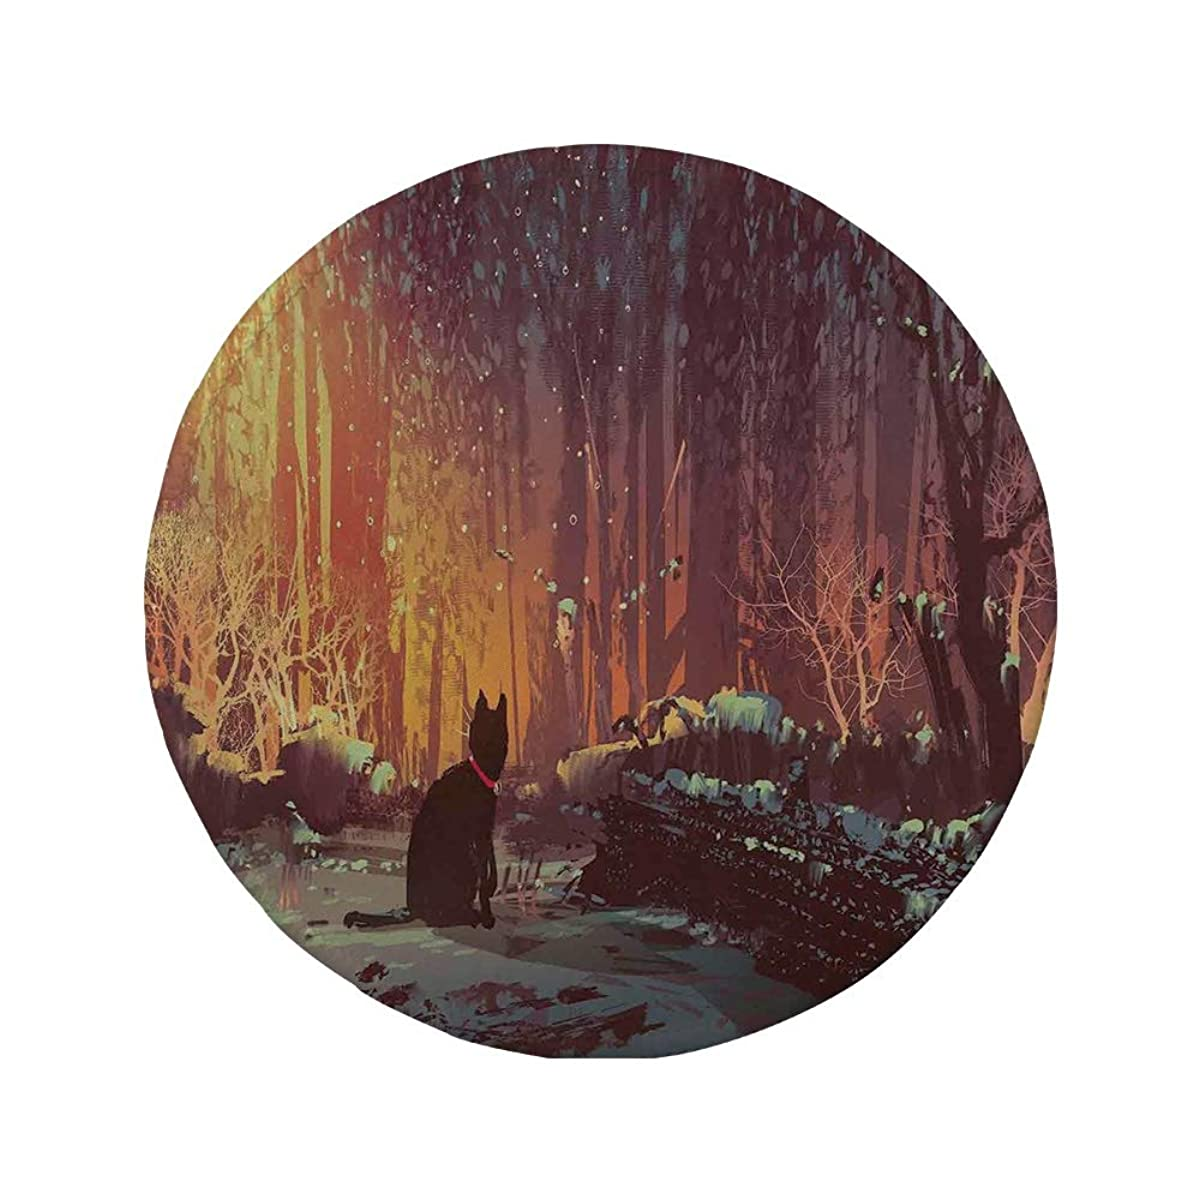 Non-Slip Rubber Round Mouse Pad,Fantasy Art Decor,Surreal Lost Black Cat Deep Dark in Forest with Mystic Lights Picture,Orange Brown,11.8